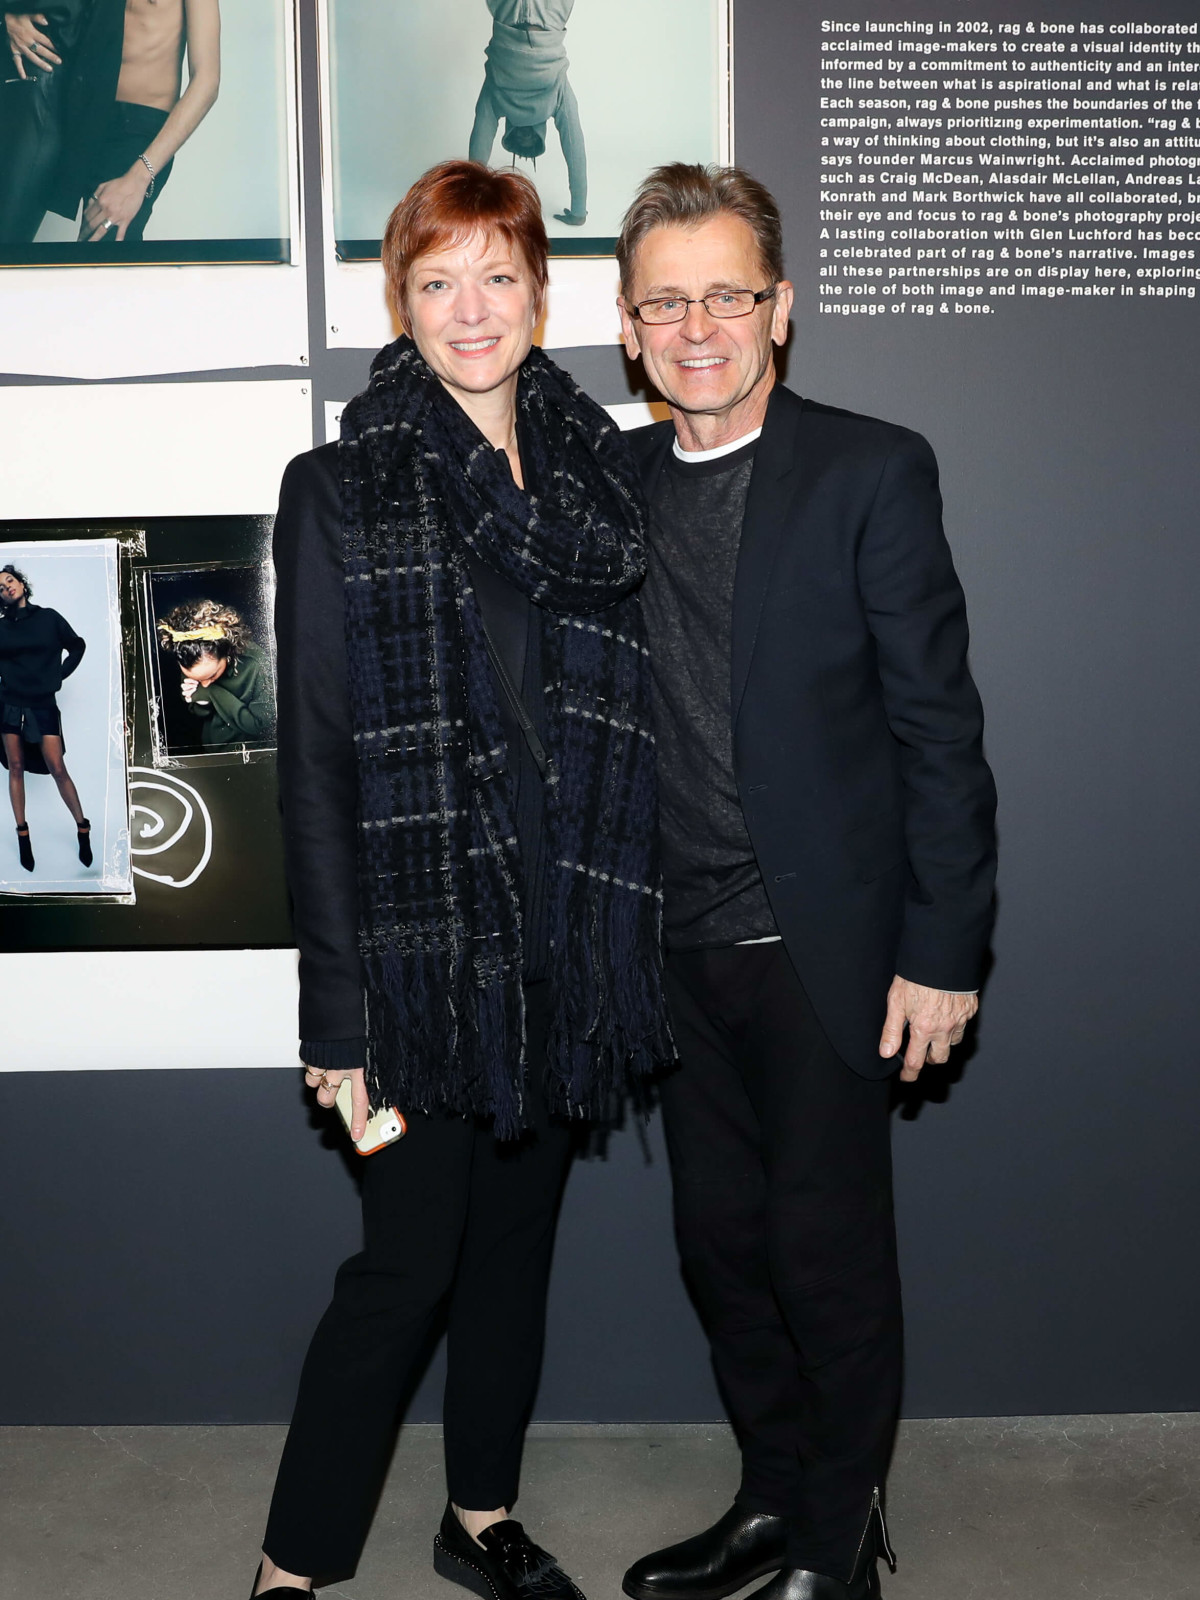 Lisa Rinehart, Mikhail Baryshnikov at Rag & Bone exhibition, party